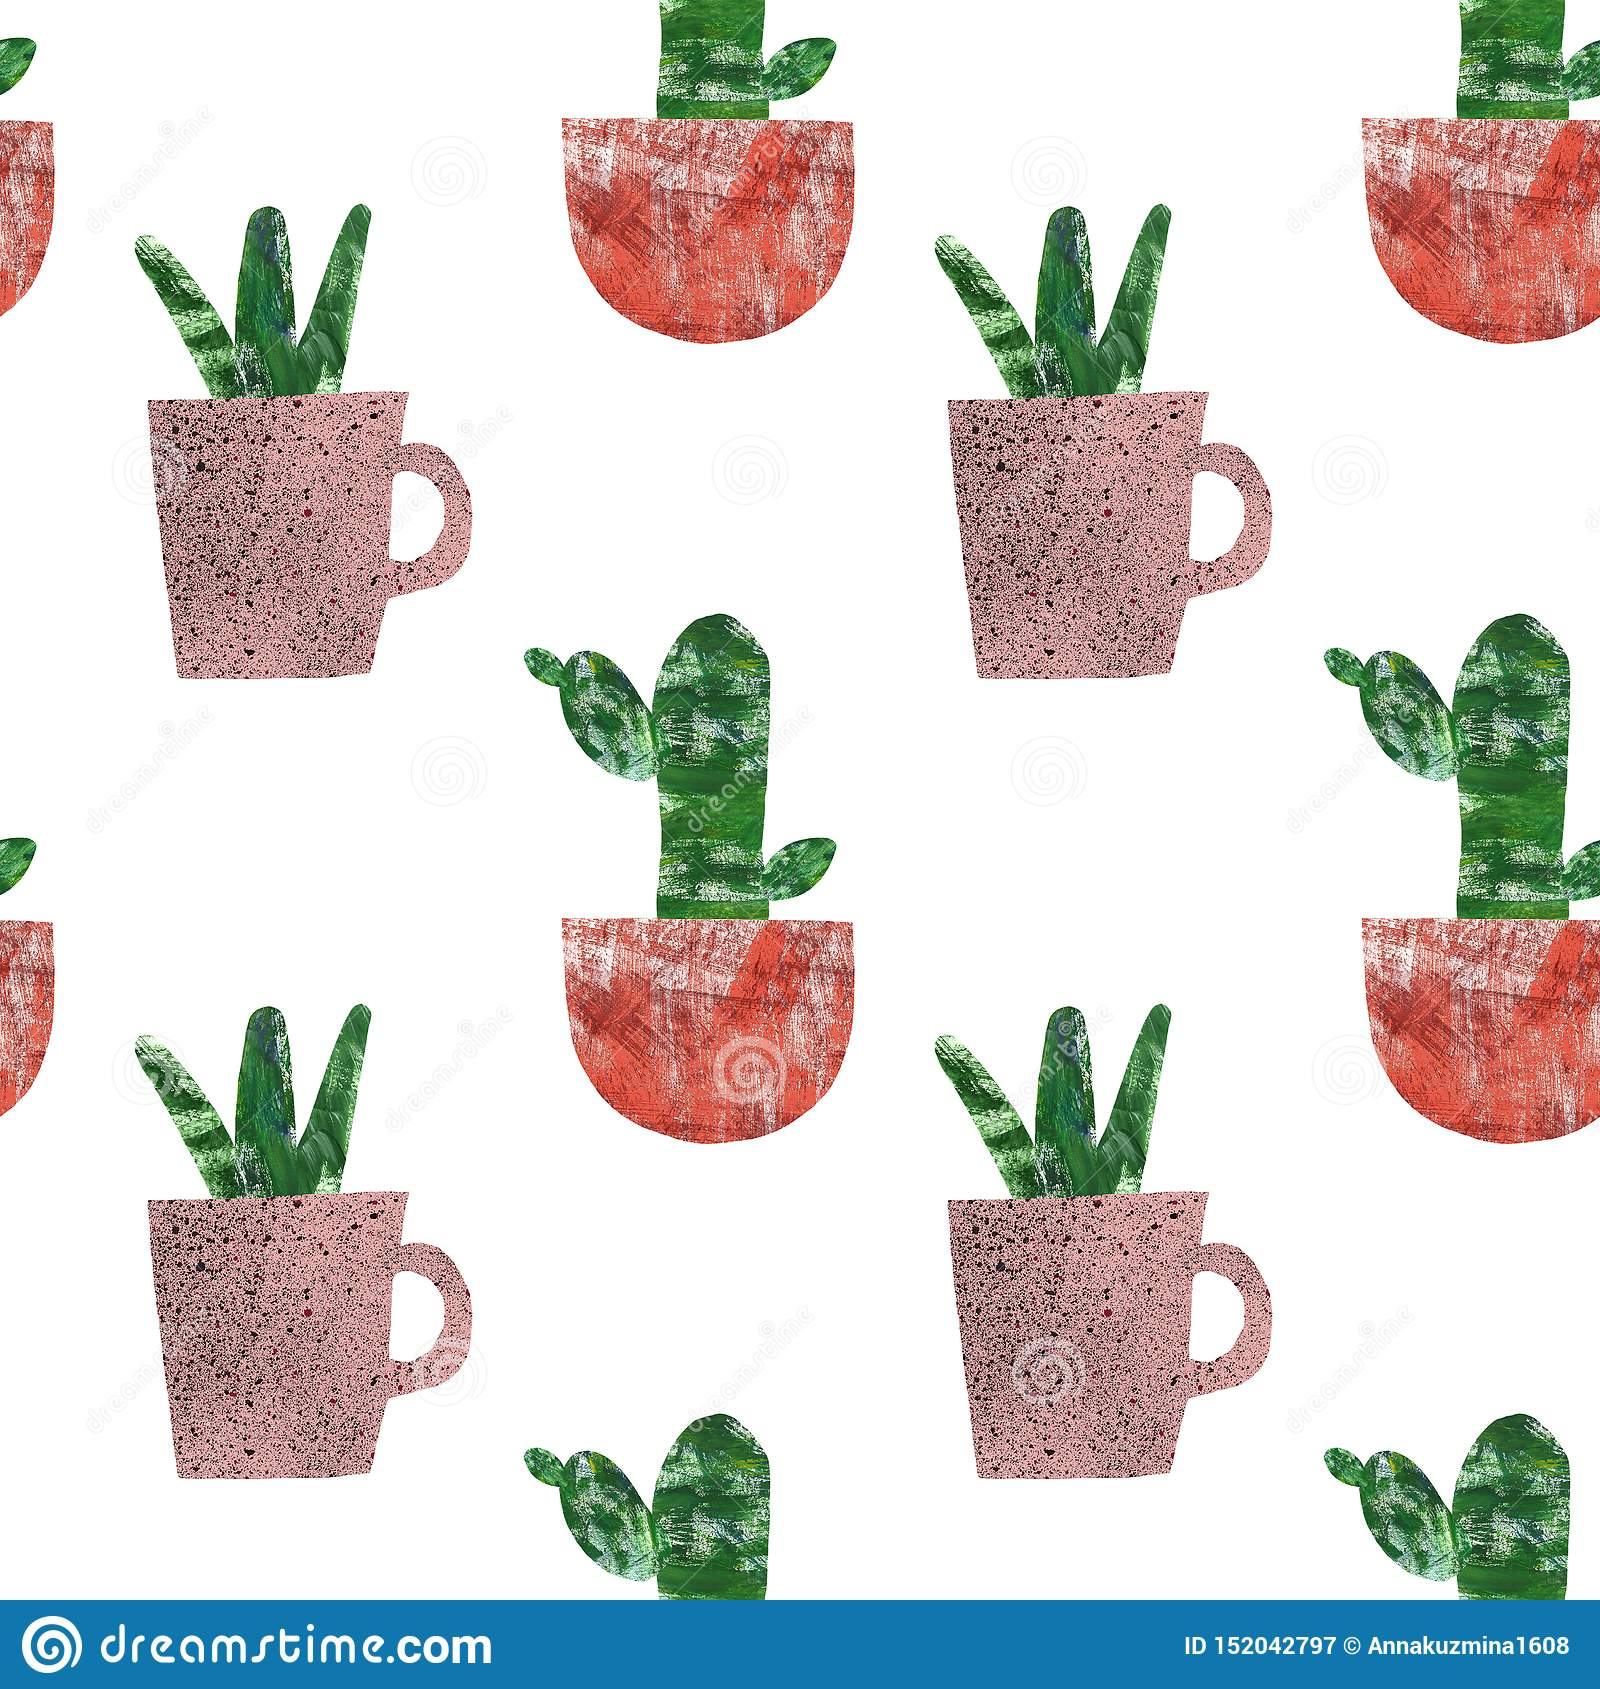 Cactus Seamless Pattern Summer Botanical Print With Cute Cacti In Flower Pots On White Background Collage Hand Painted Texture Stock Illustration Illustration Of Green Flora 152042797